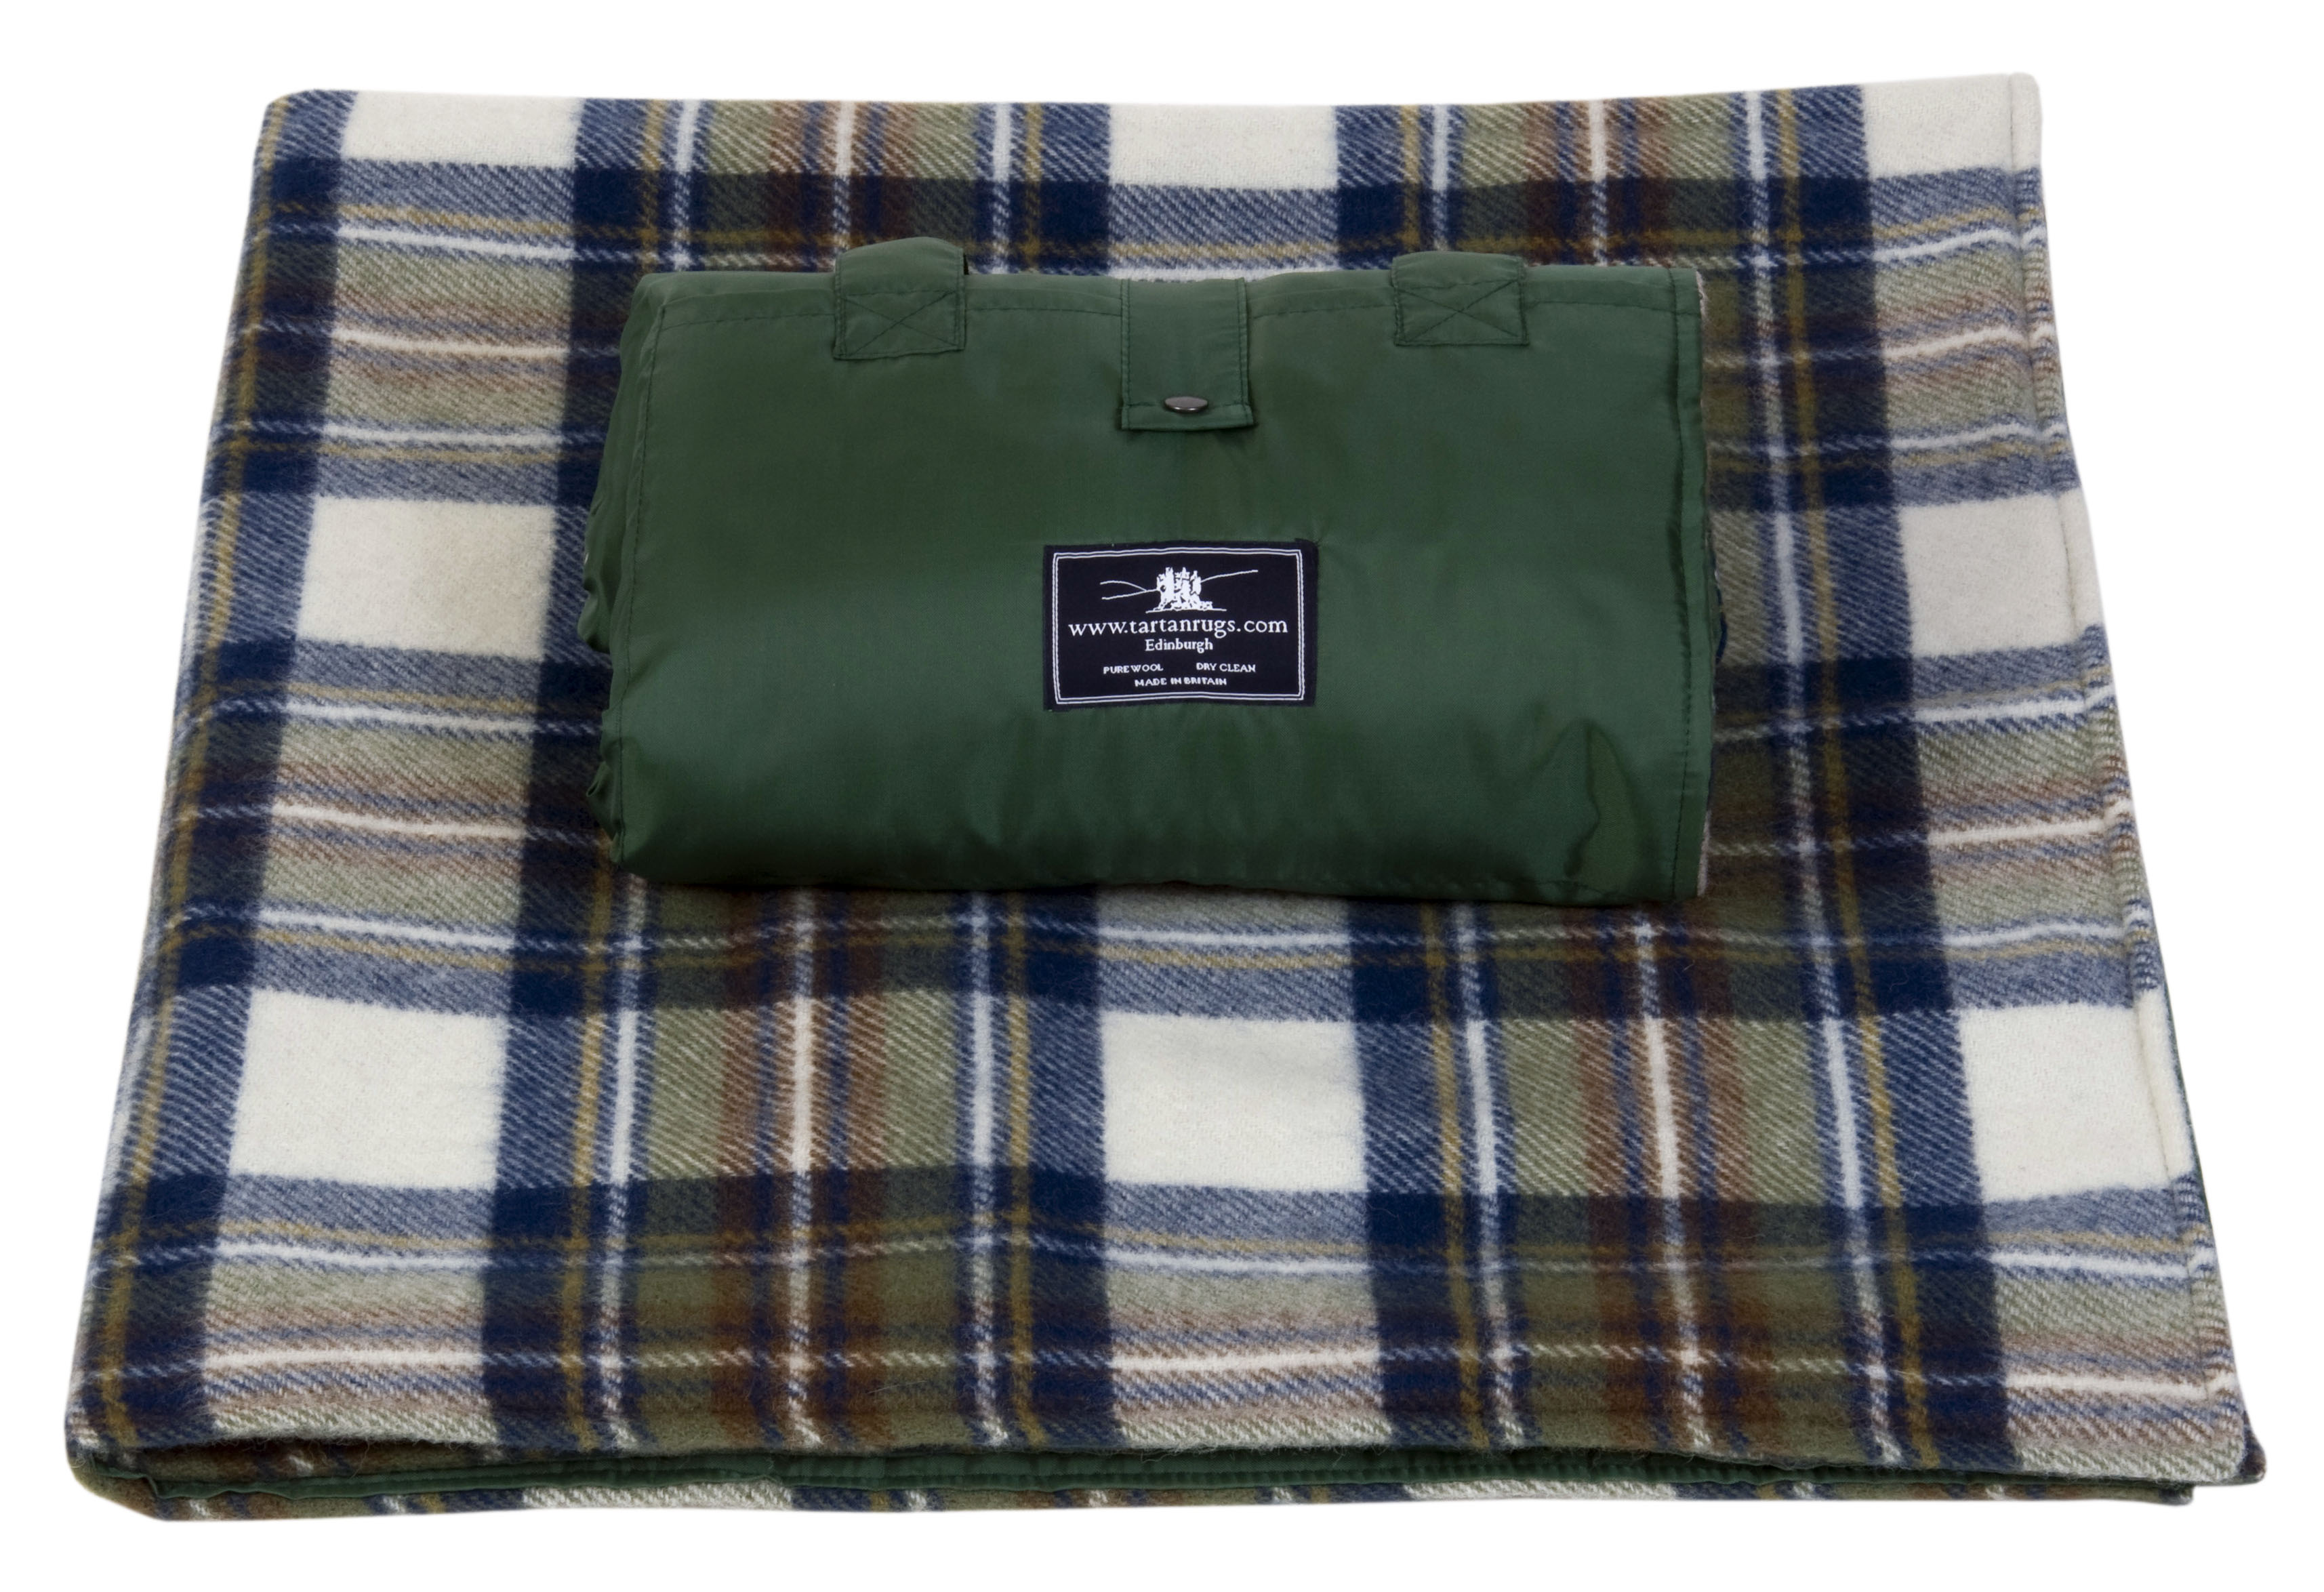 Muted Blue Tartan Waterproof Picnic Rug